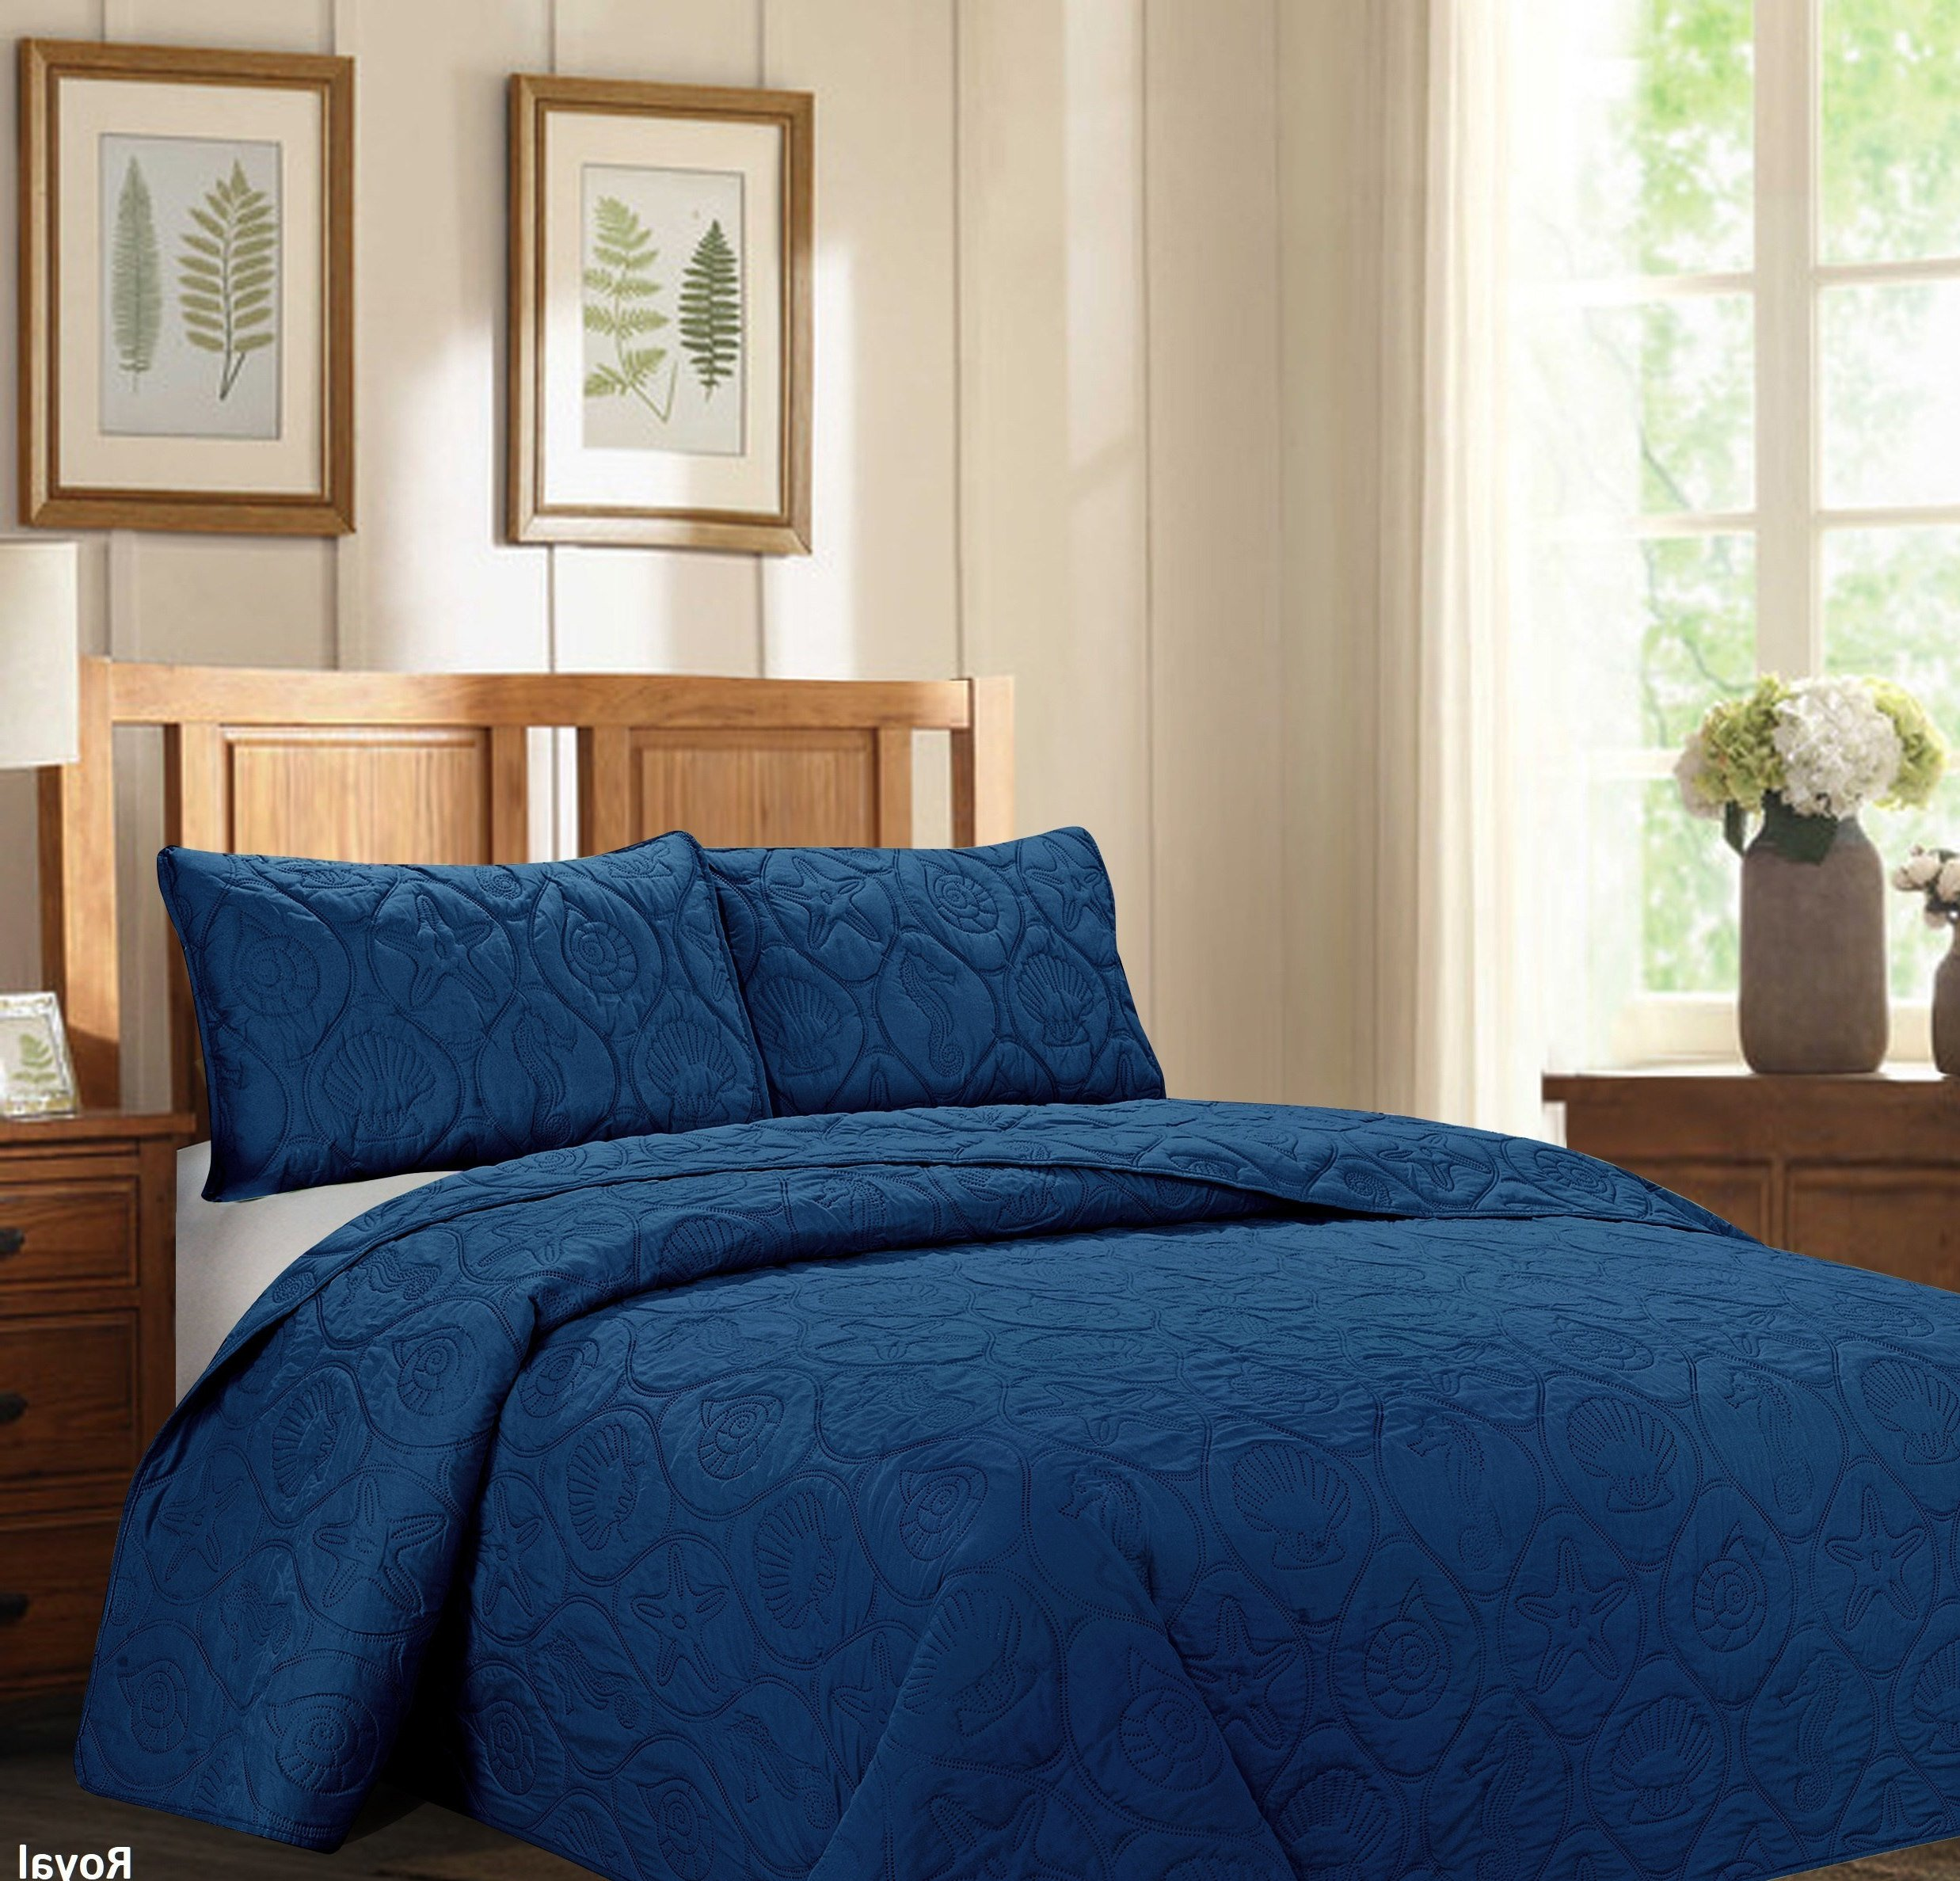 ON 3 Piece Royal Navy Blue Queen Bedspread Set, Ocean Themed Bedding Shell Pattern Sea Animal Nautical Beach Chic Modern Coastal Trendy Cottage Star Fish Snail Oversized Solid, Microfiber